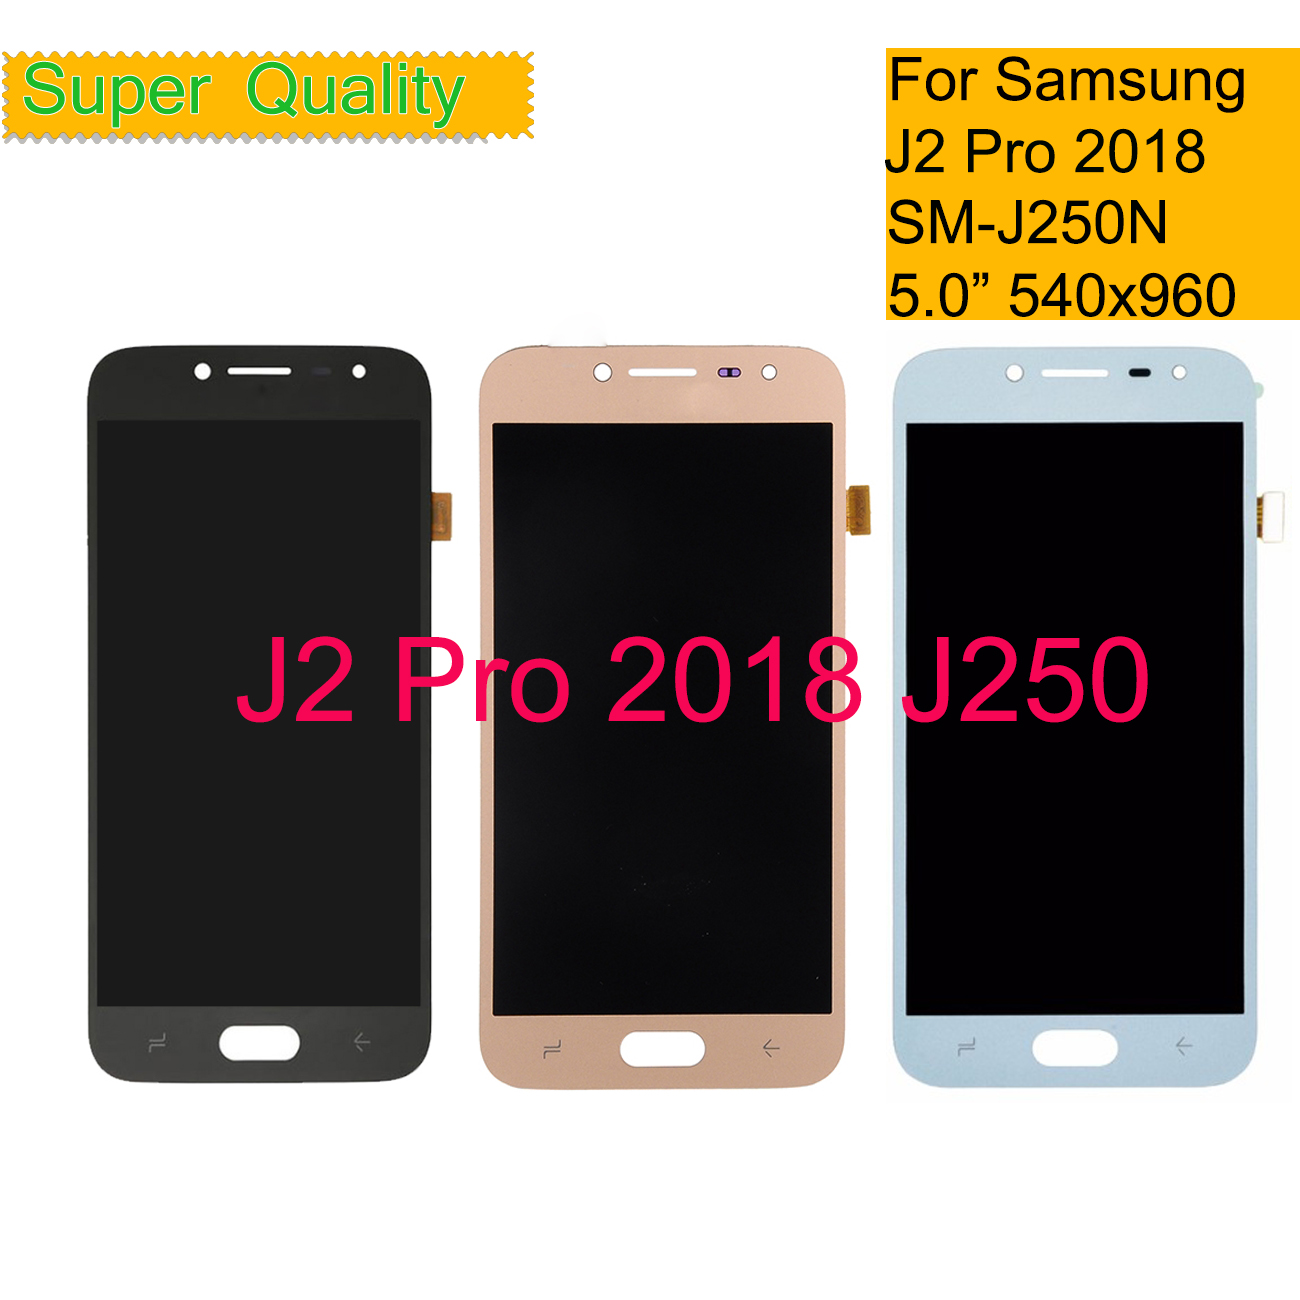 Original J250 Amoled LCD For <font><b>Samsung</b></font> <font><b>Galaxy</b></font> <font><b>J2</b></font> pro <font><b>2018</b></font> J250 <font><b>J250F</b></font> J250N LCD Display touch screen digitizer assembly <font><b>SM</b></font>-<font><b>J250F</b></font> image